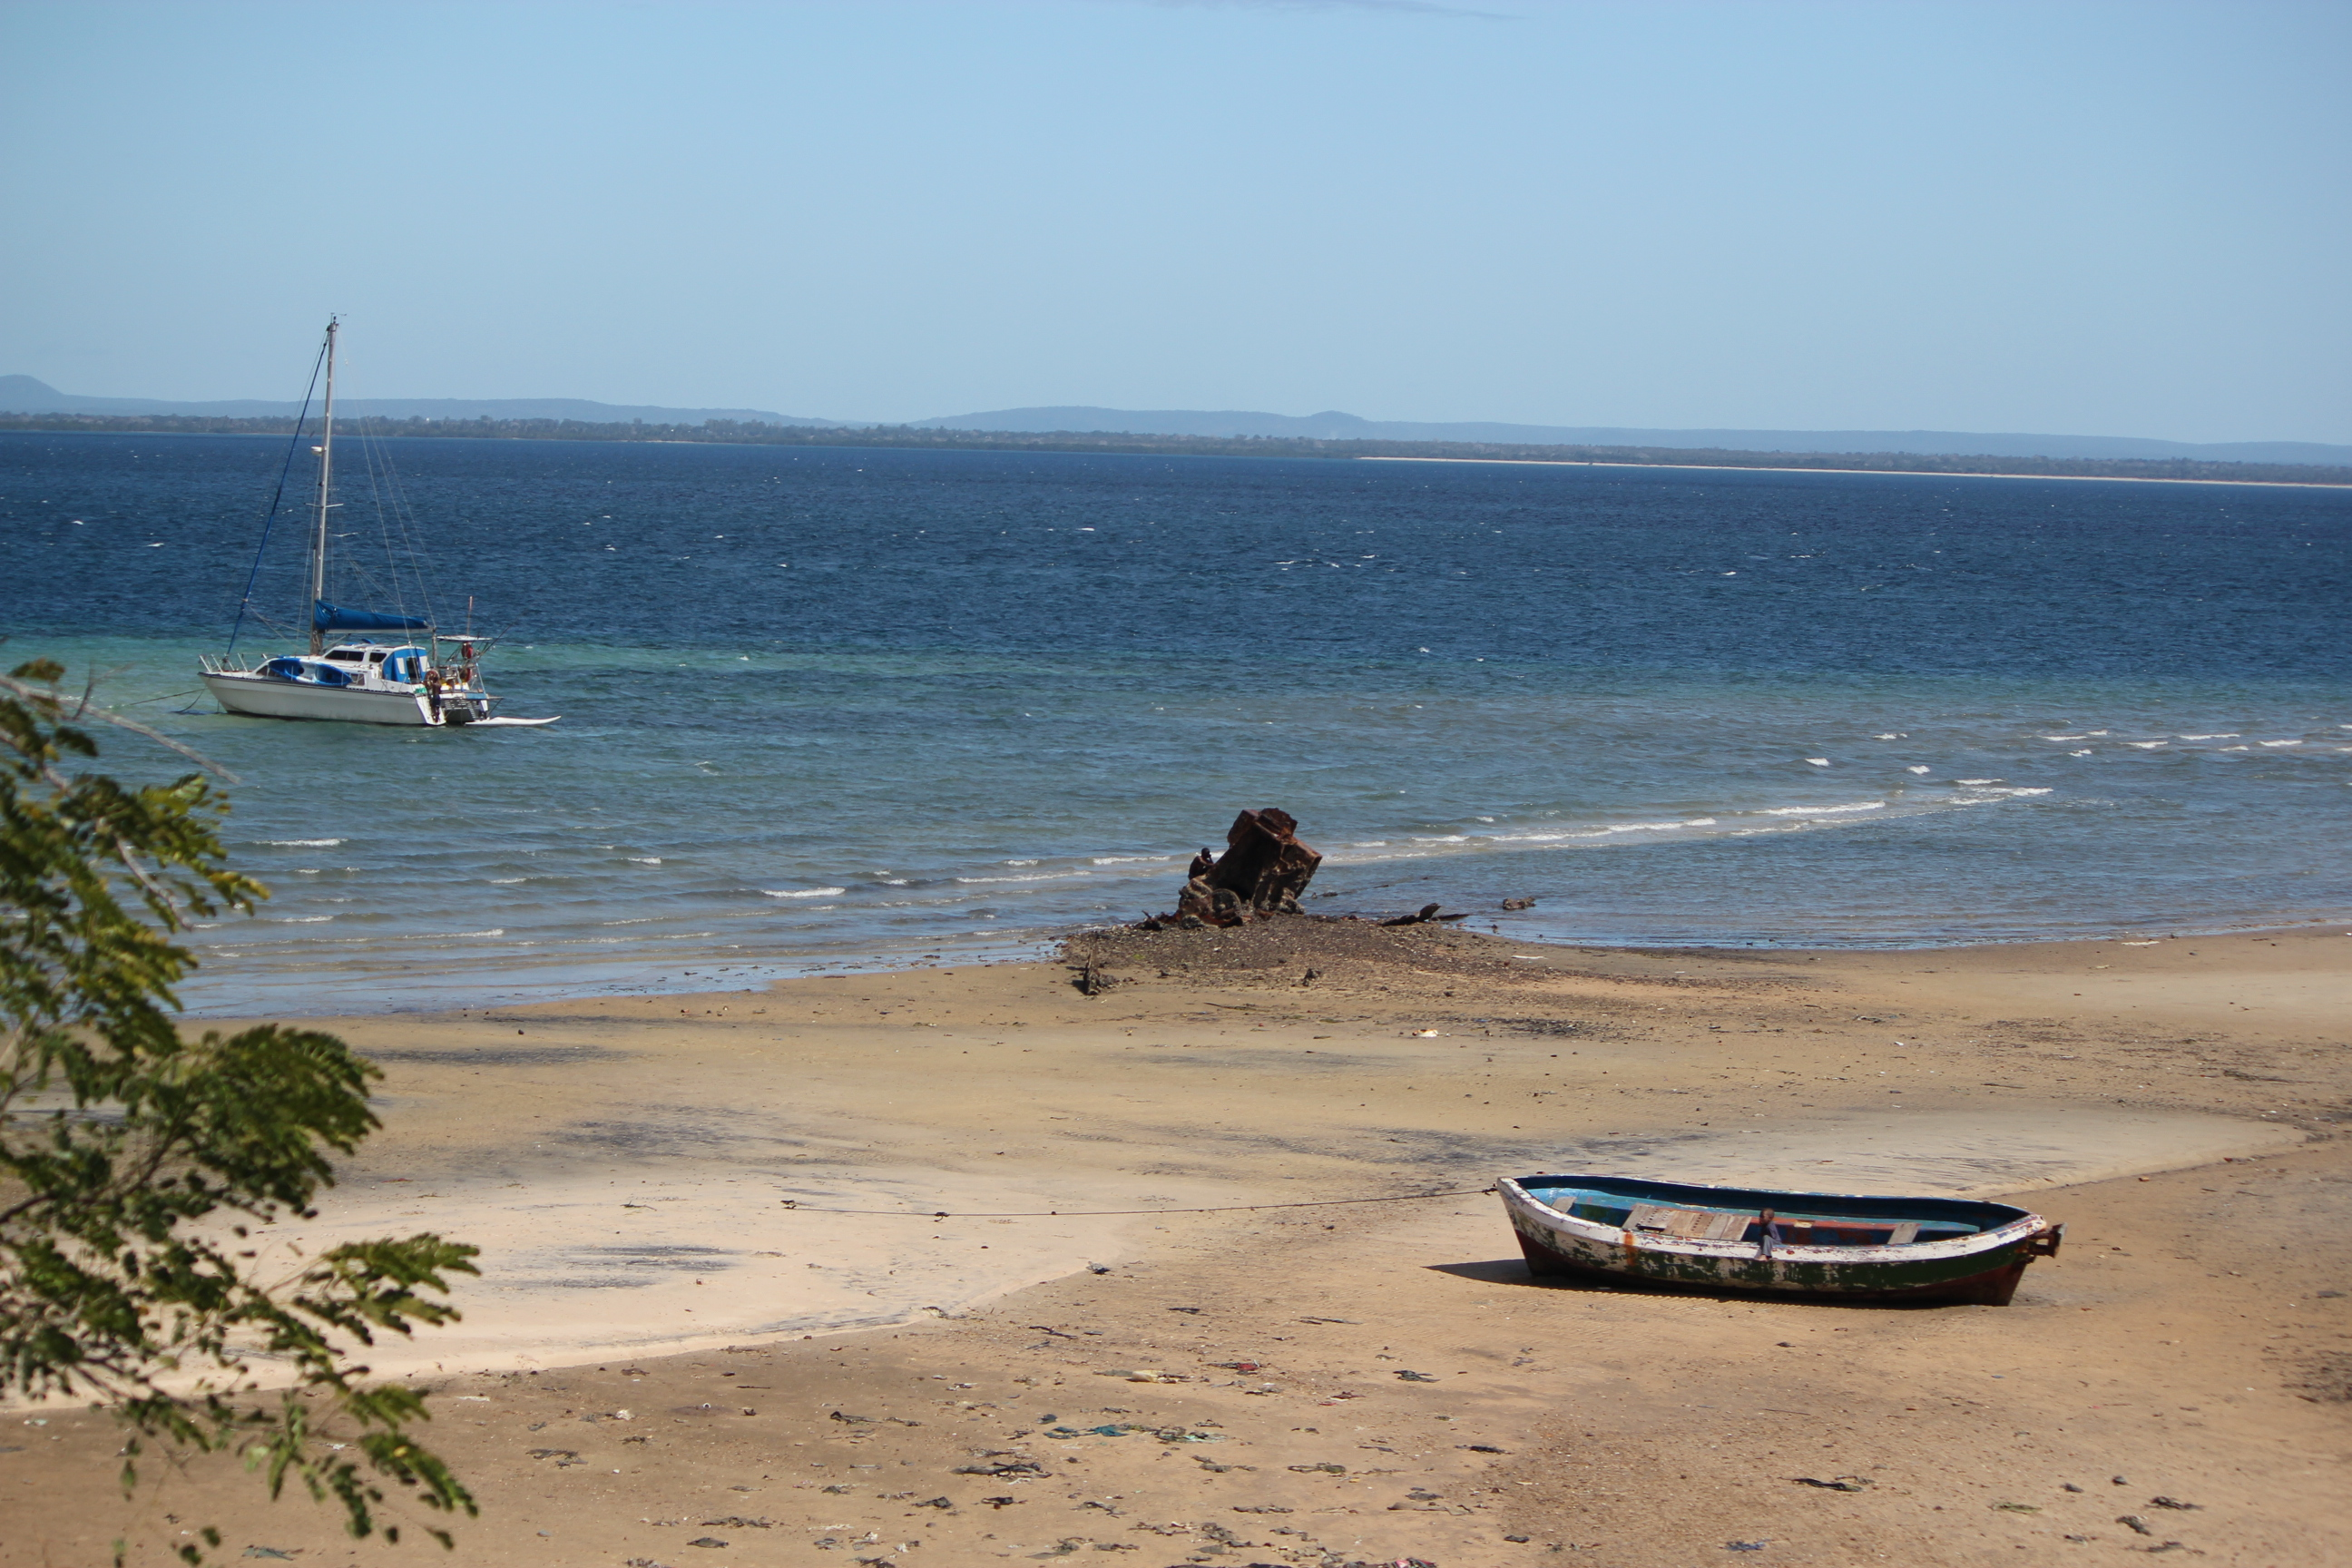 Boy in Boat; Pemba, Mozambique; 2011